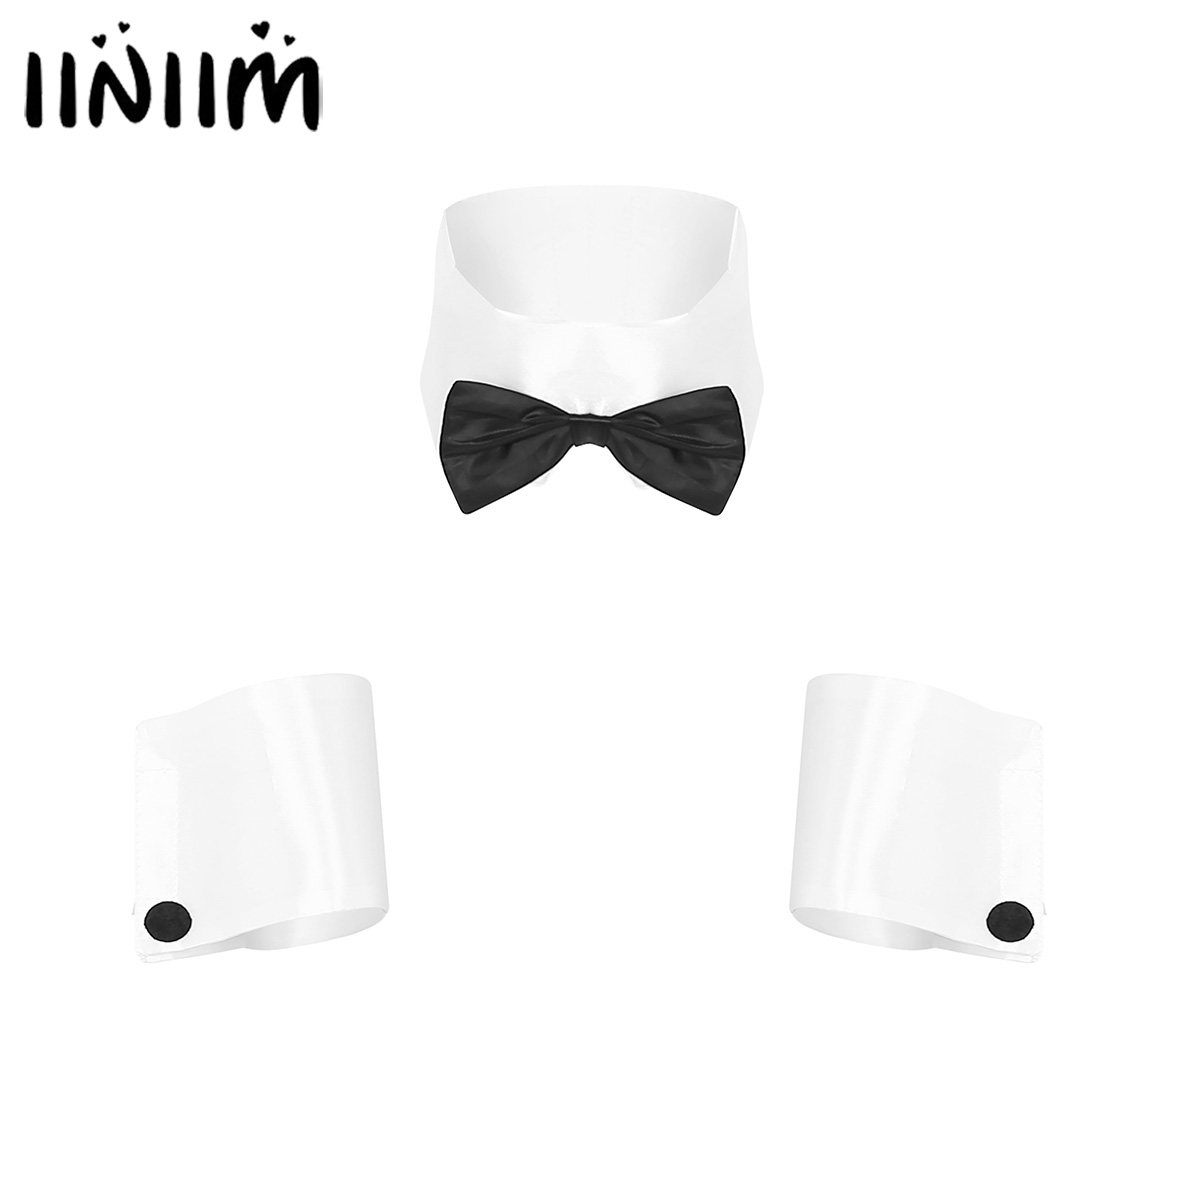 Mens Adults Dancer Costume Playboy Costume Collar And Cuffs Set For Halloween Single Parties Novelty Halloween Accessories